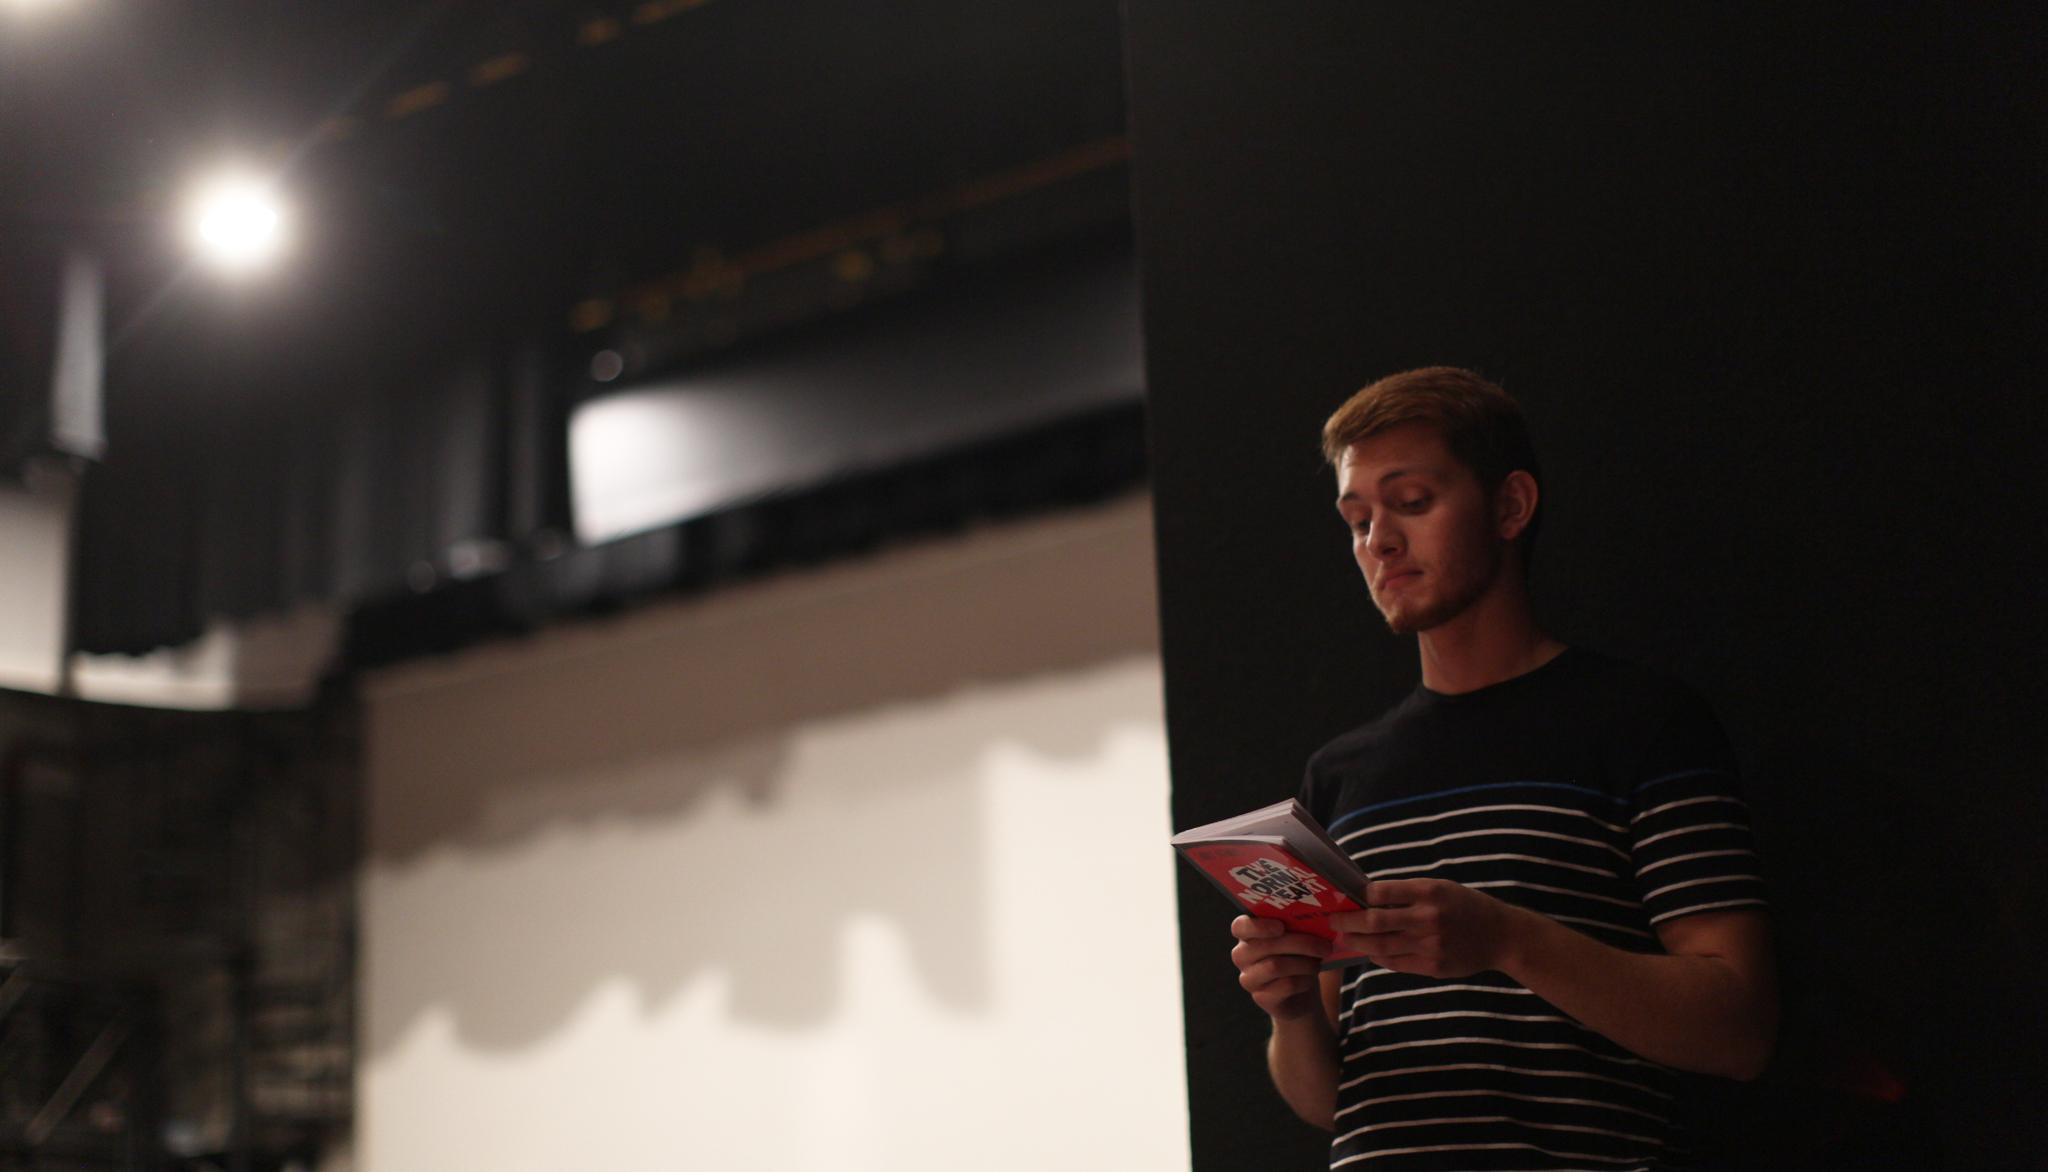 A young man standing backstage at a theatre and holding a script